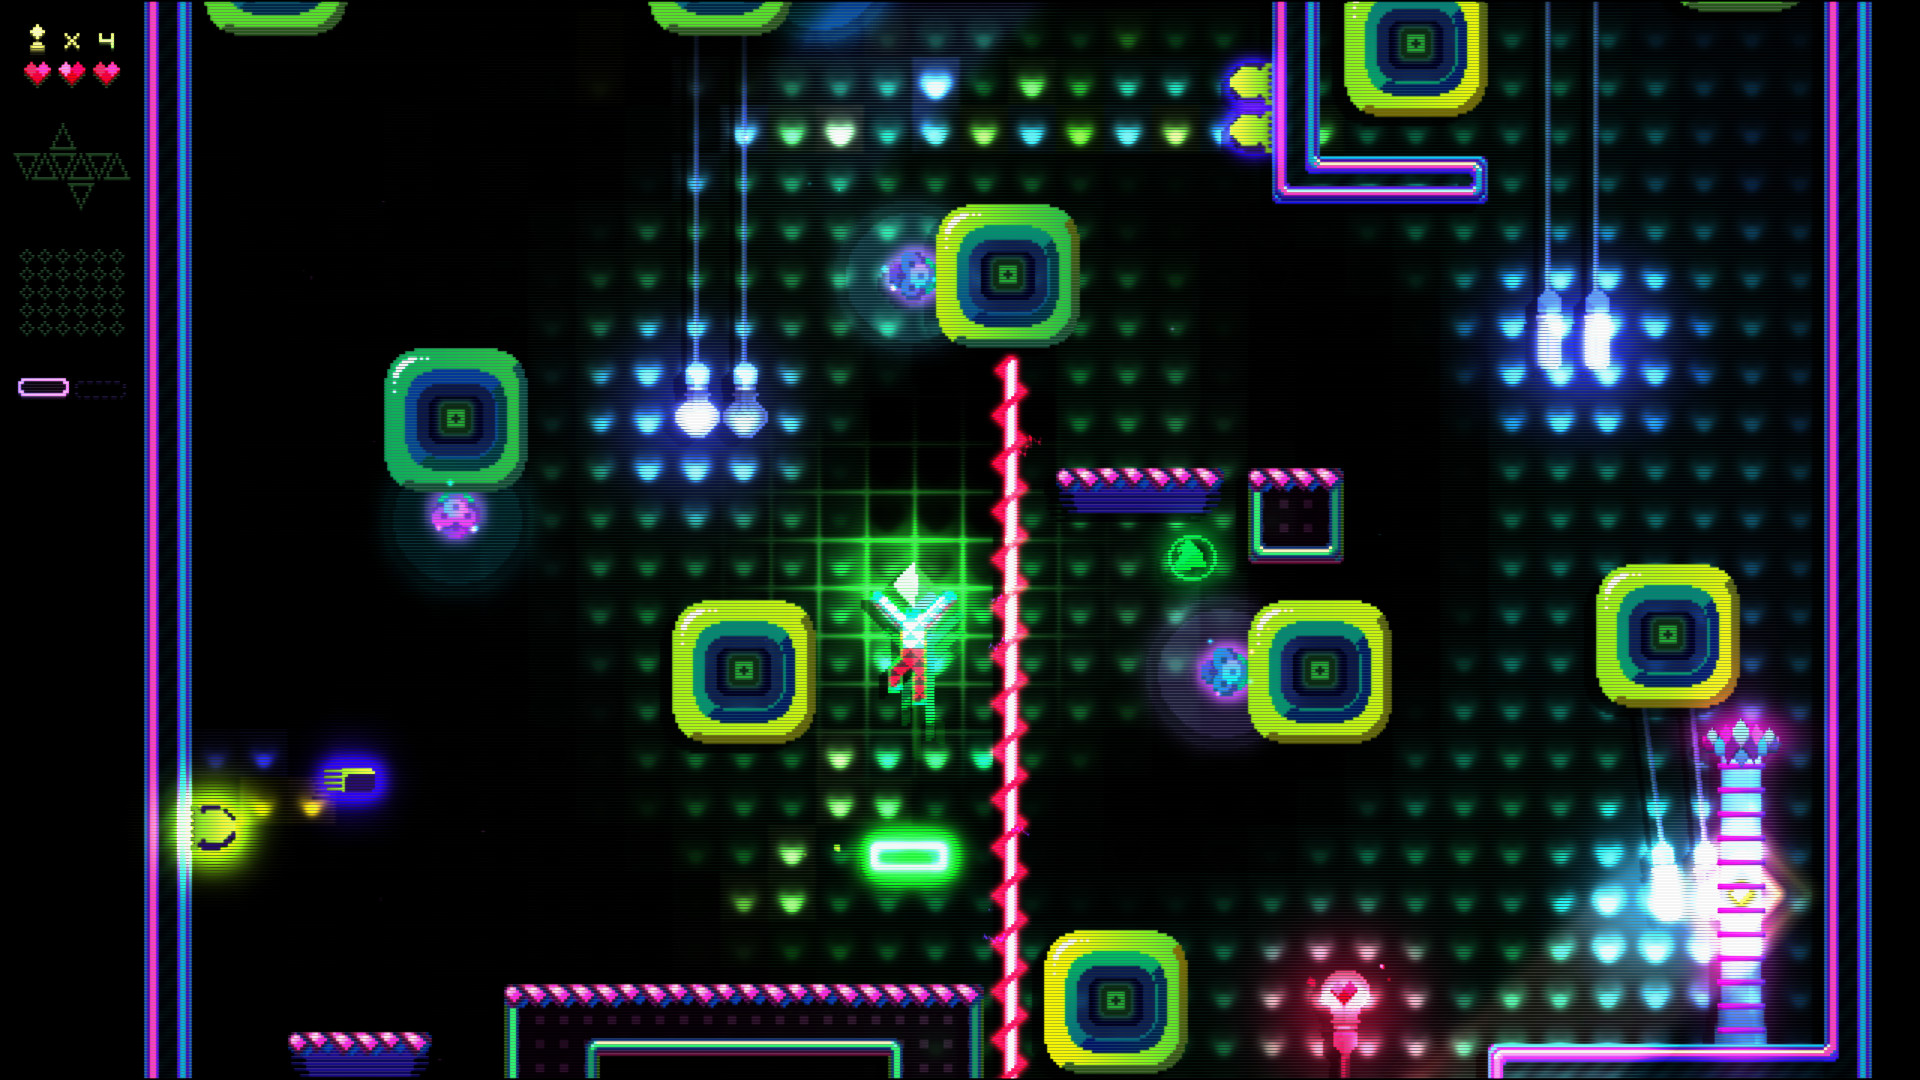 Octahedron climbing onto Steam and consoles